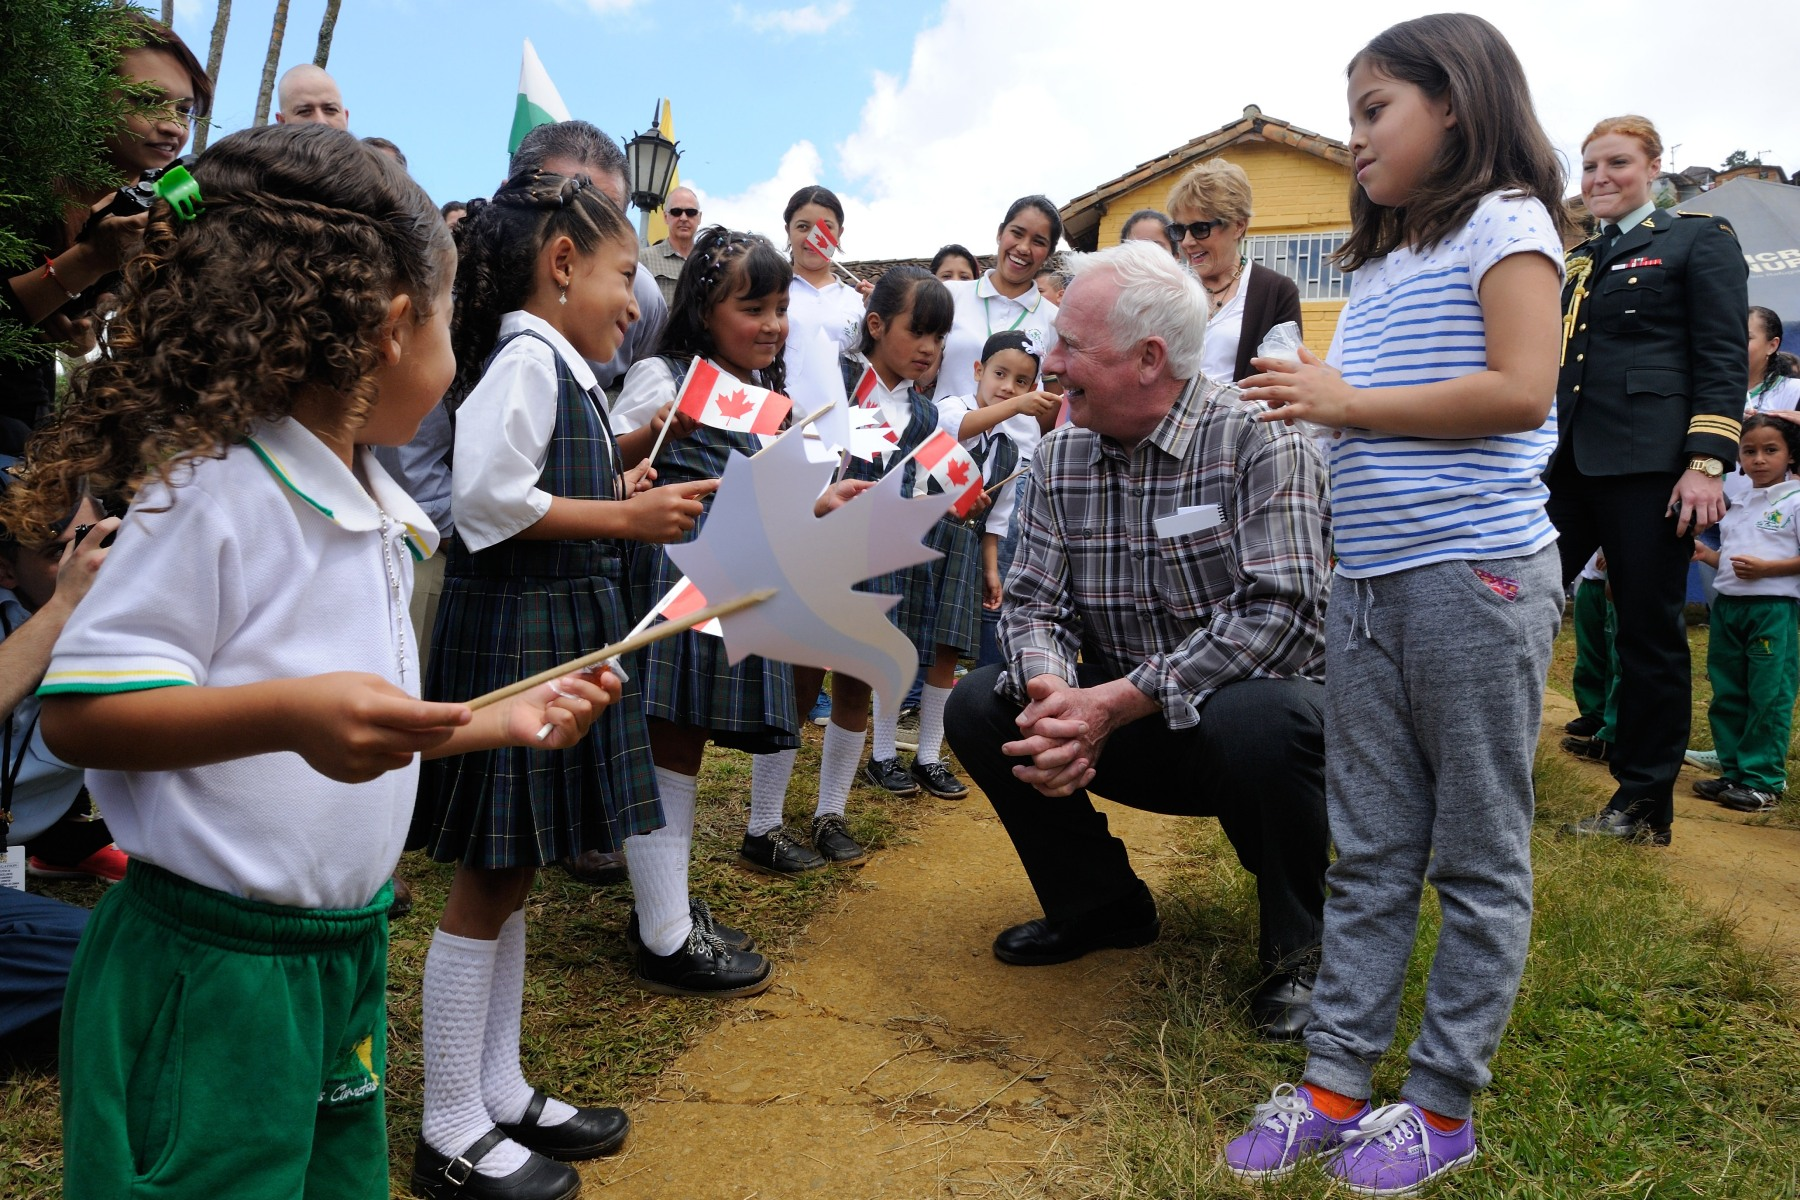 Their Excellencies then proceeded to Fundación Cometa, a local organization that provides access to education and training, to engage with development partners, beneficiaries and local authorities. They were greeted by children, who waved proudly the Canadian and Colombian flags.